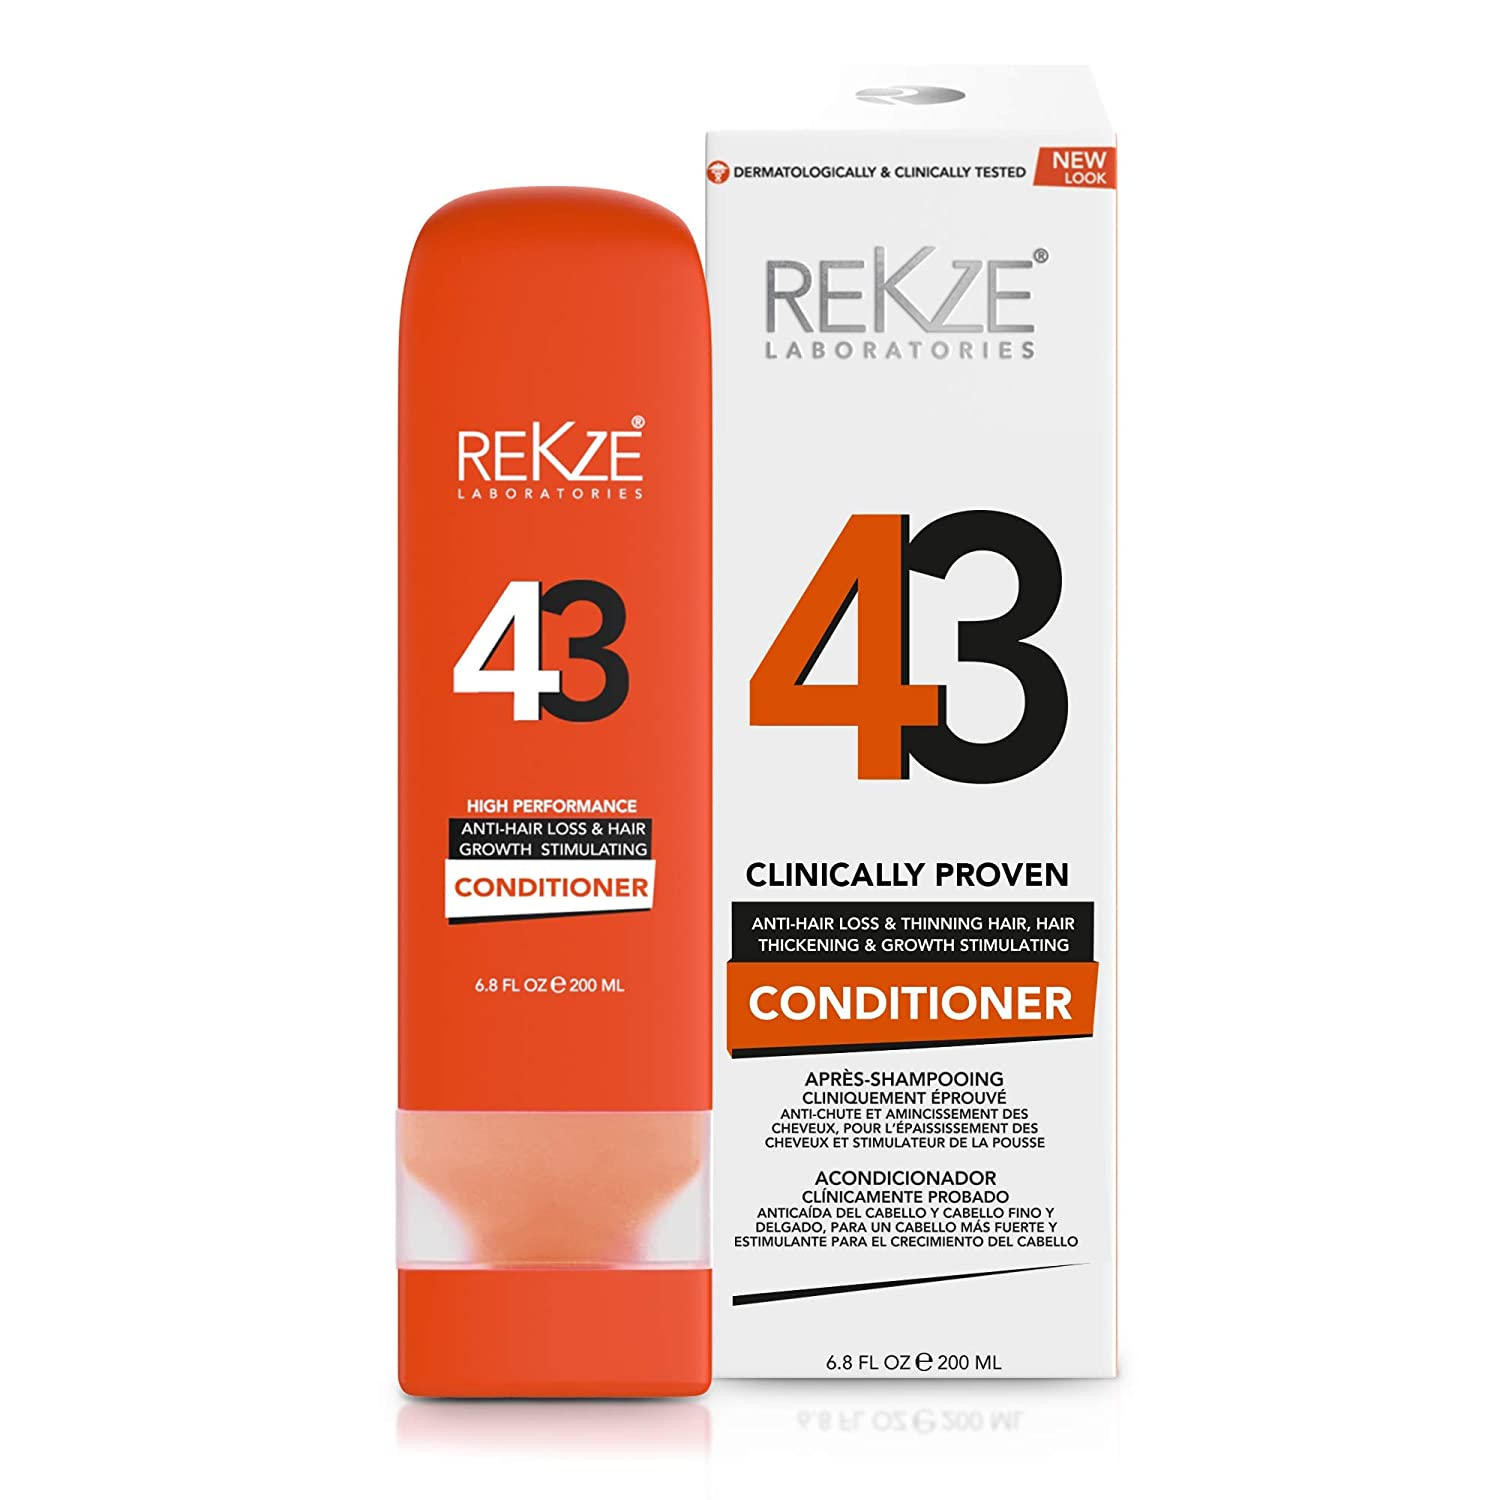 REKZE 43 Conditioner Clinically Proven Hair Growth Stimulating & Anti-Hair Loss For Men & Women, DHT Blocker For Thinning, Thickening & Damaged, All Hair Types, Color Treated: Beauty